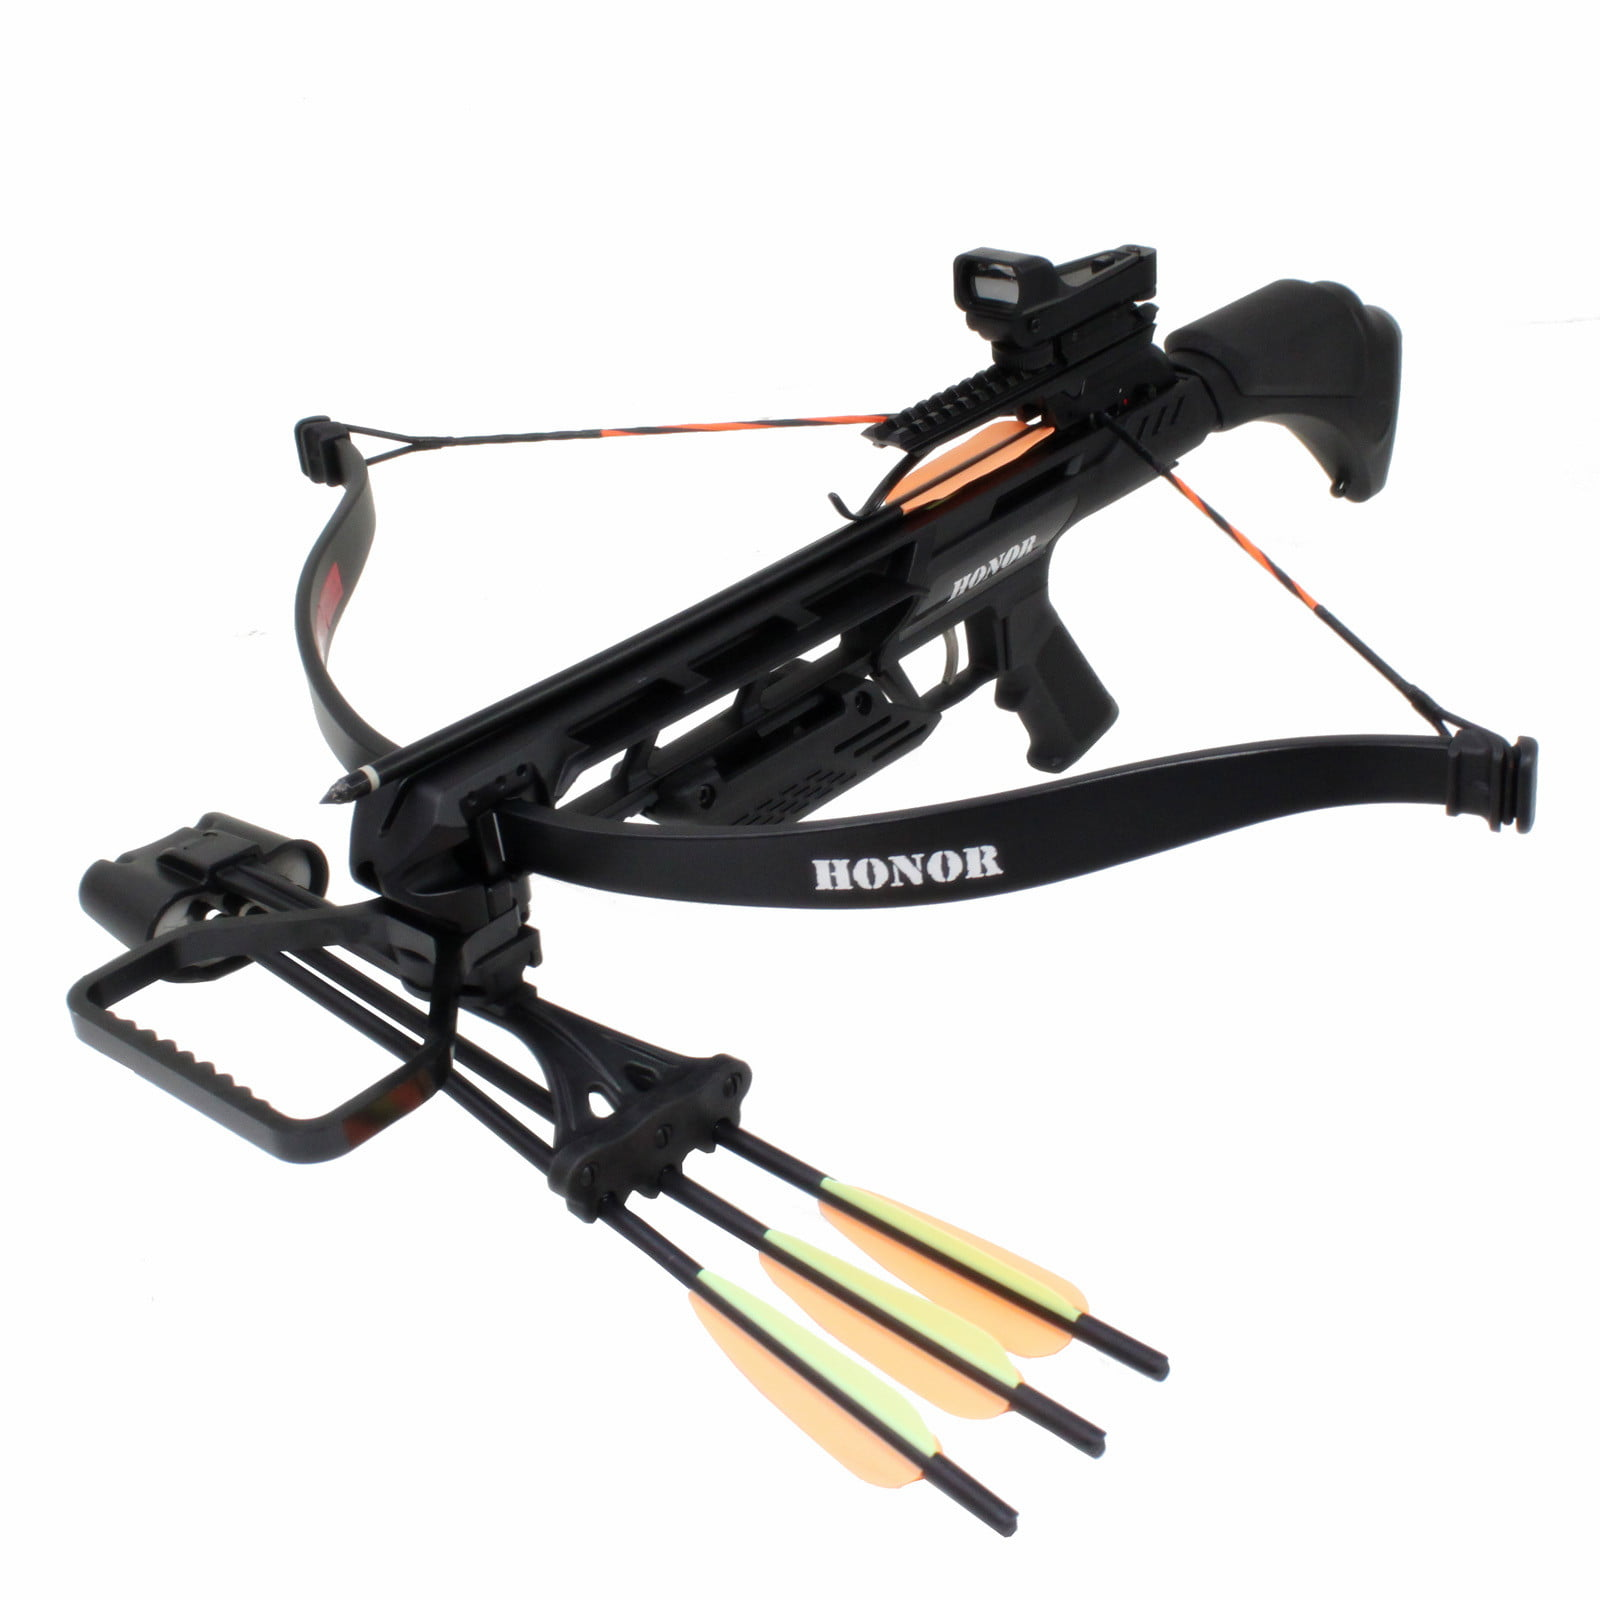 SAS Honor 175 lbs Recurve Crossbow Package -Camo by SAS